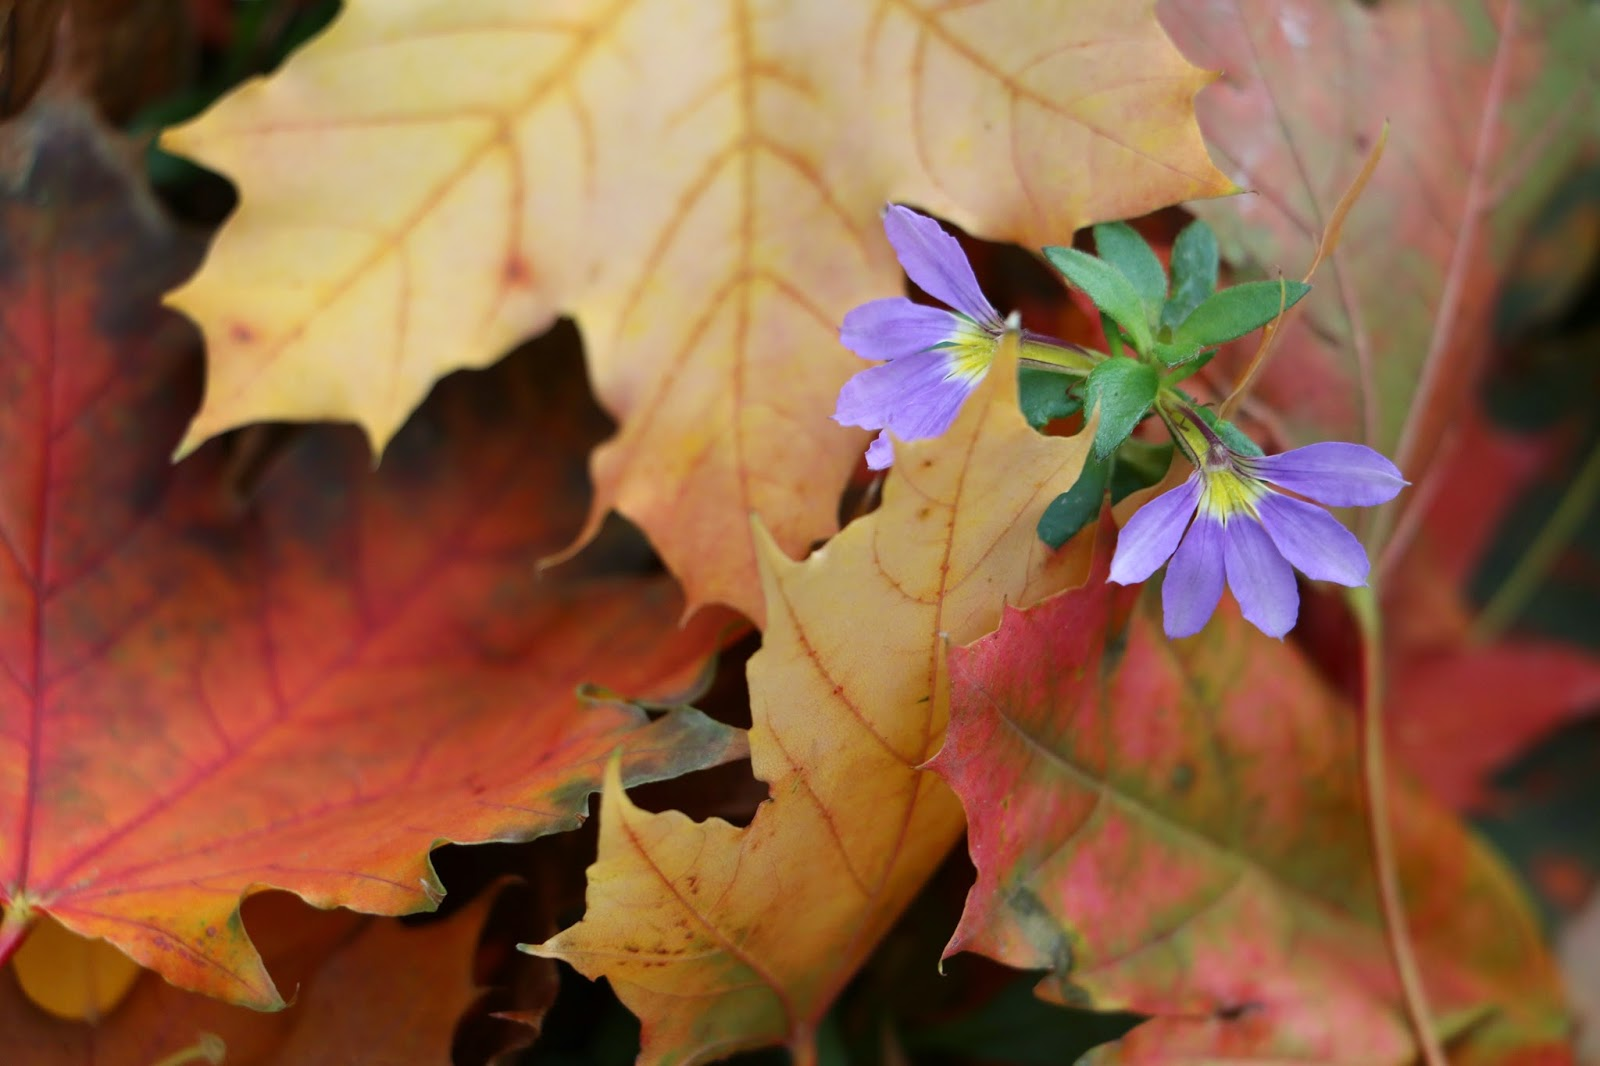 Colorful leaves of Canada-2, Photo: Shahrzad Ghaffari MVM, 23 oct.2014